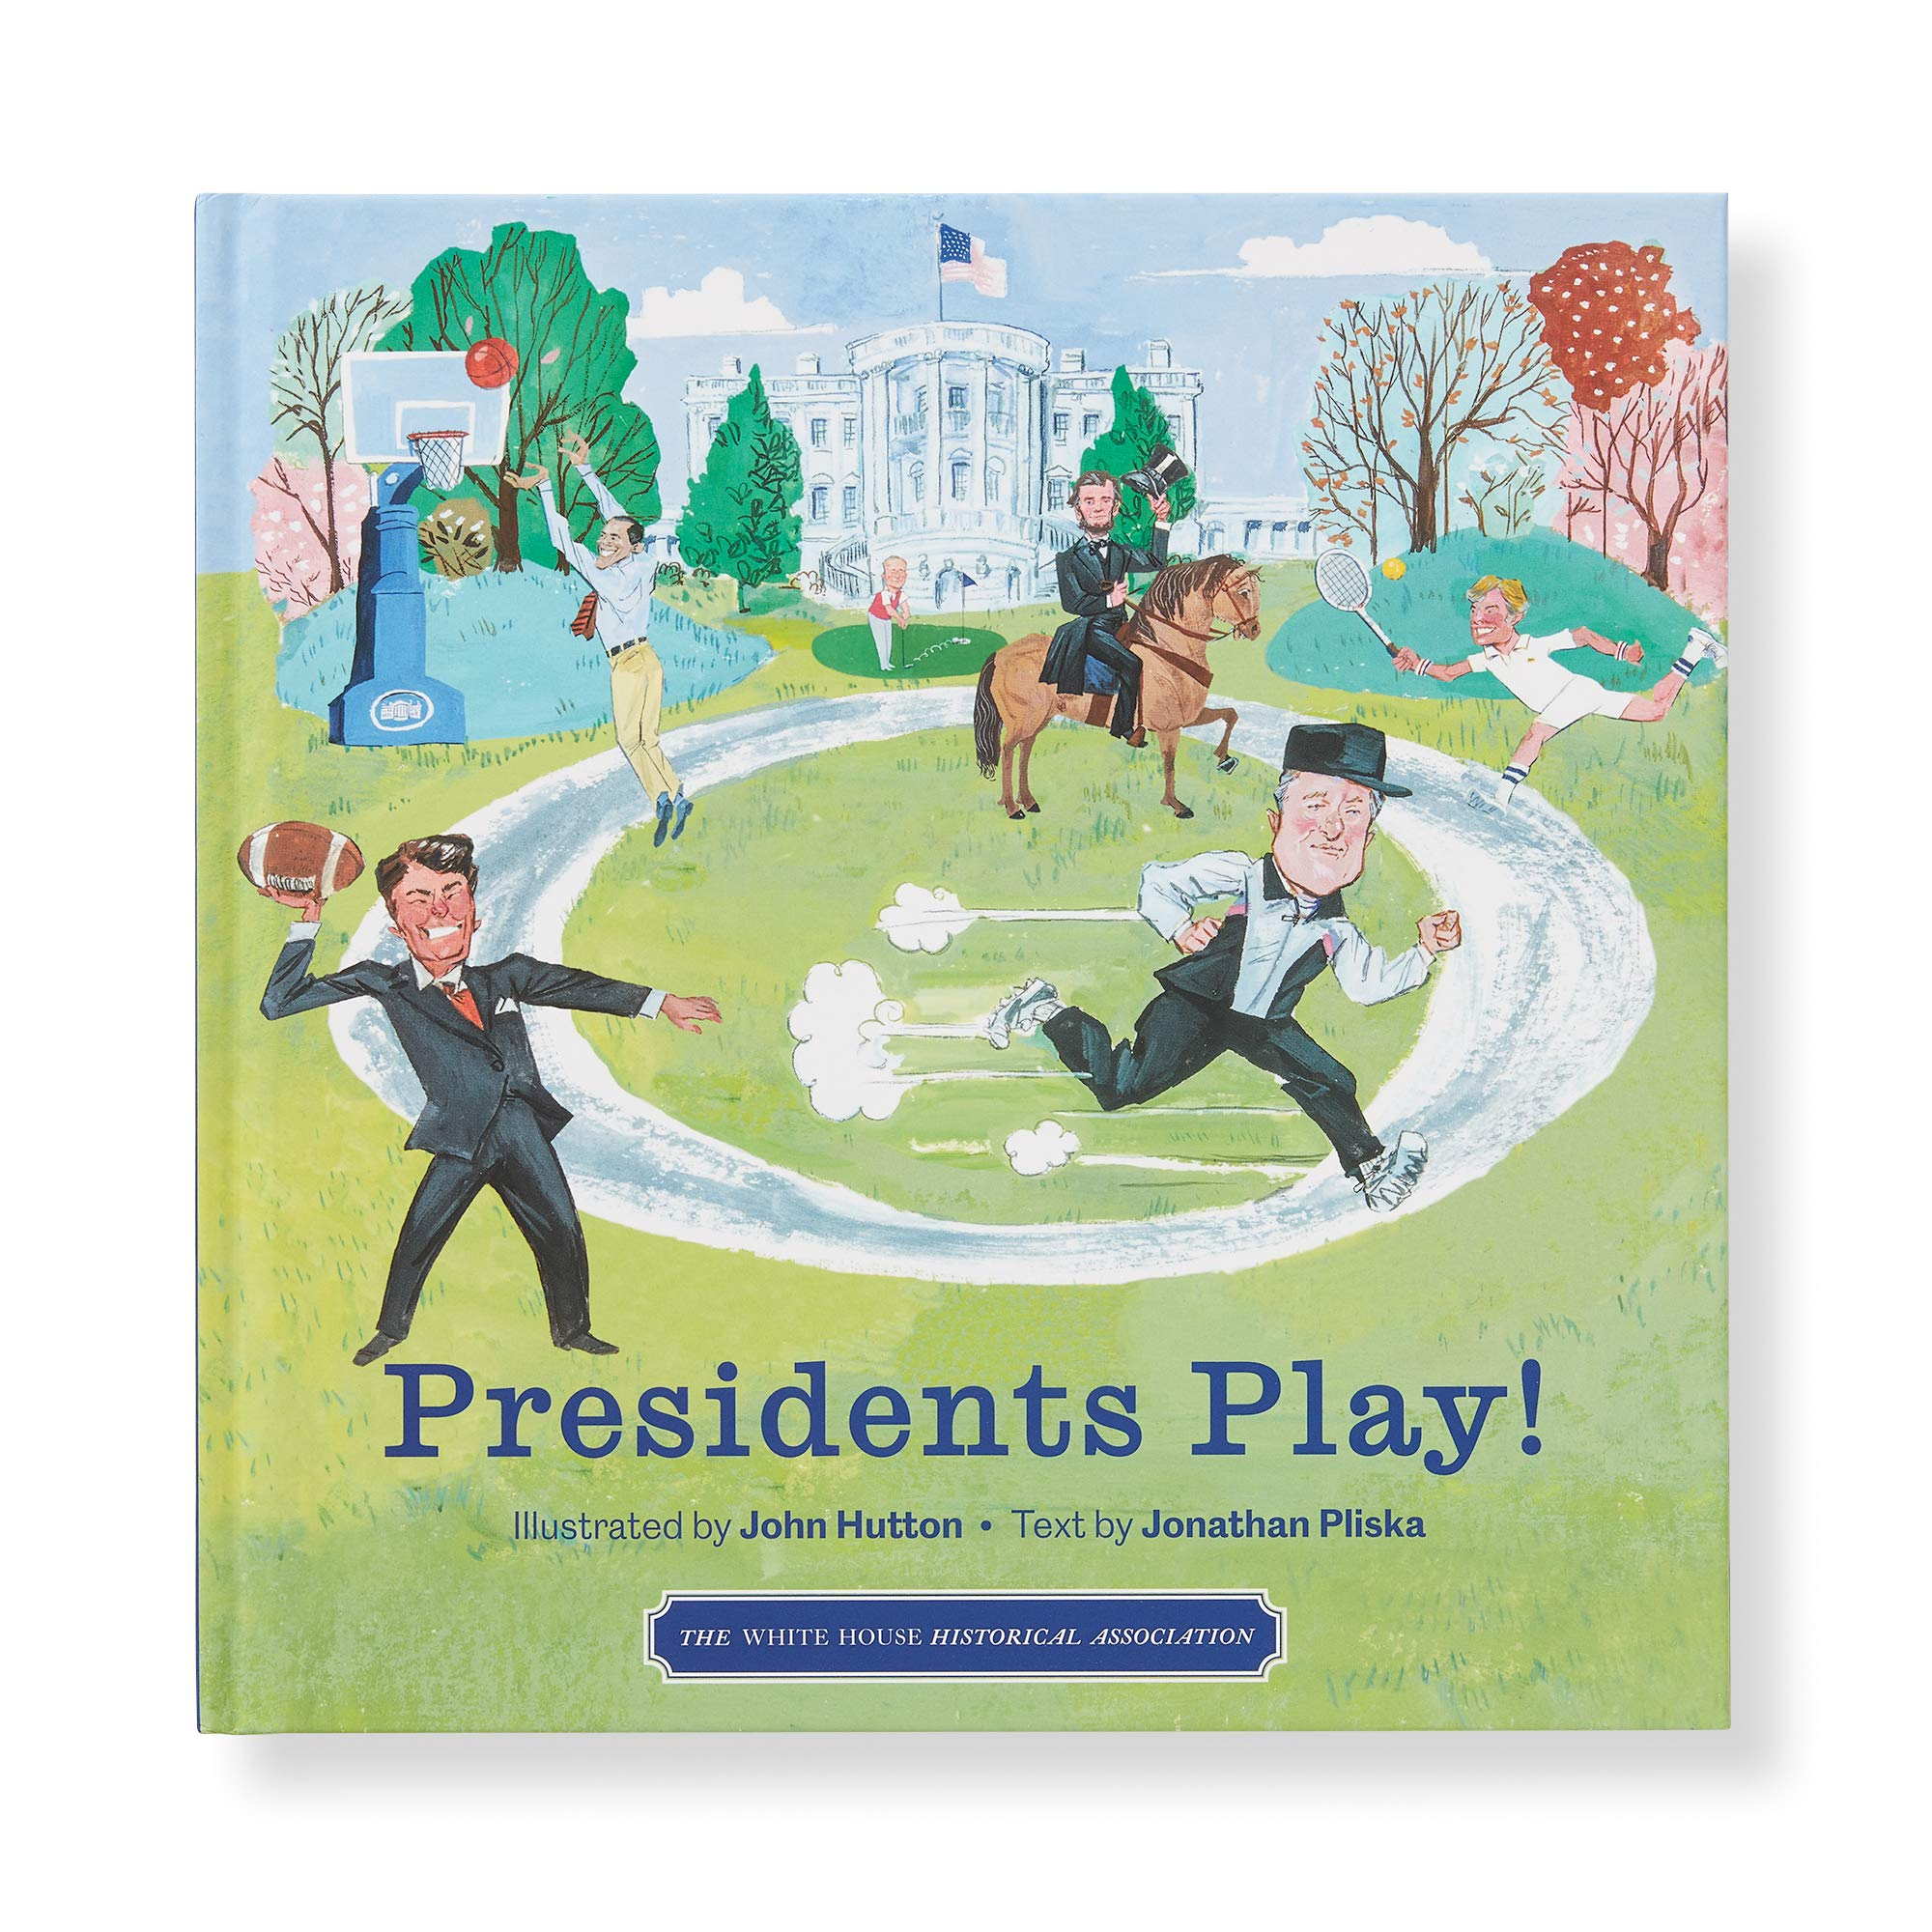 Presidents Play!